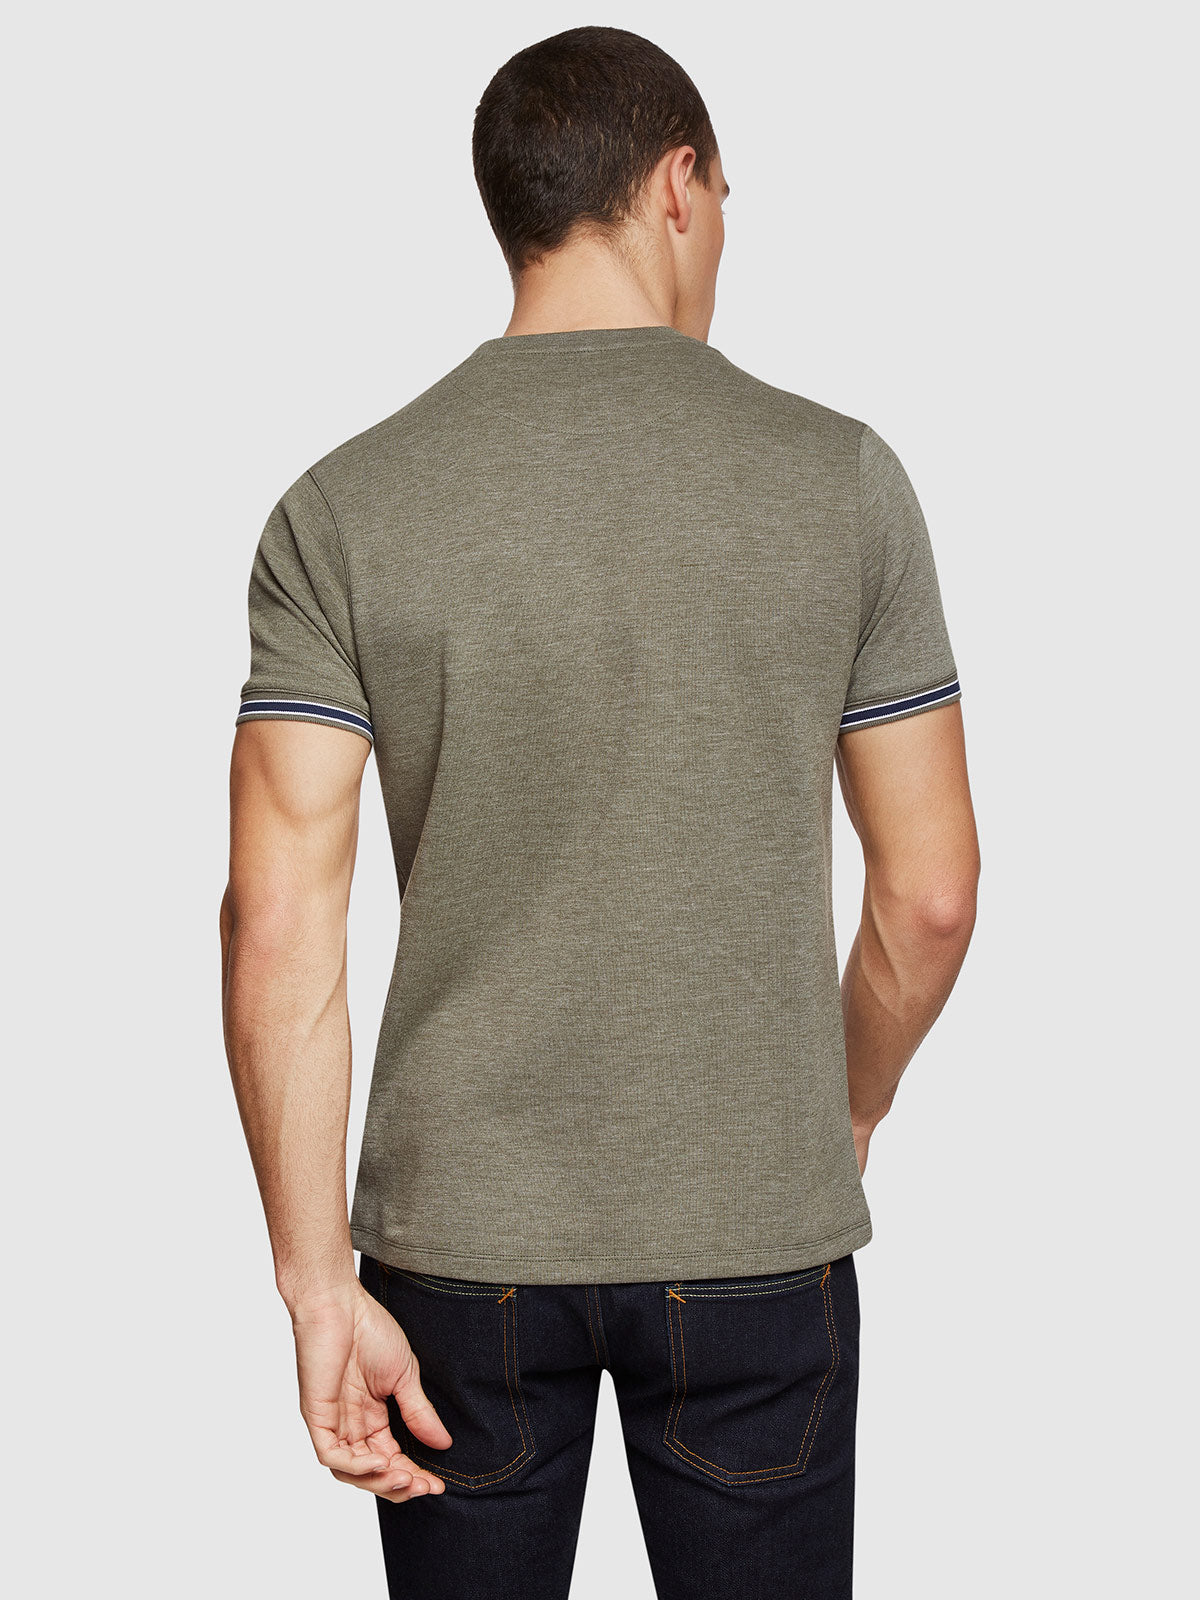 DYLAN TRIM POCKET T-SHIRT